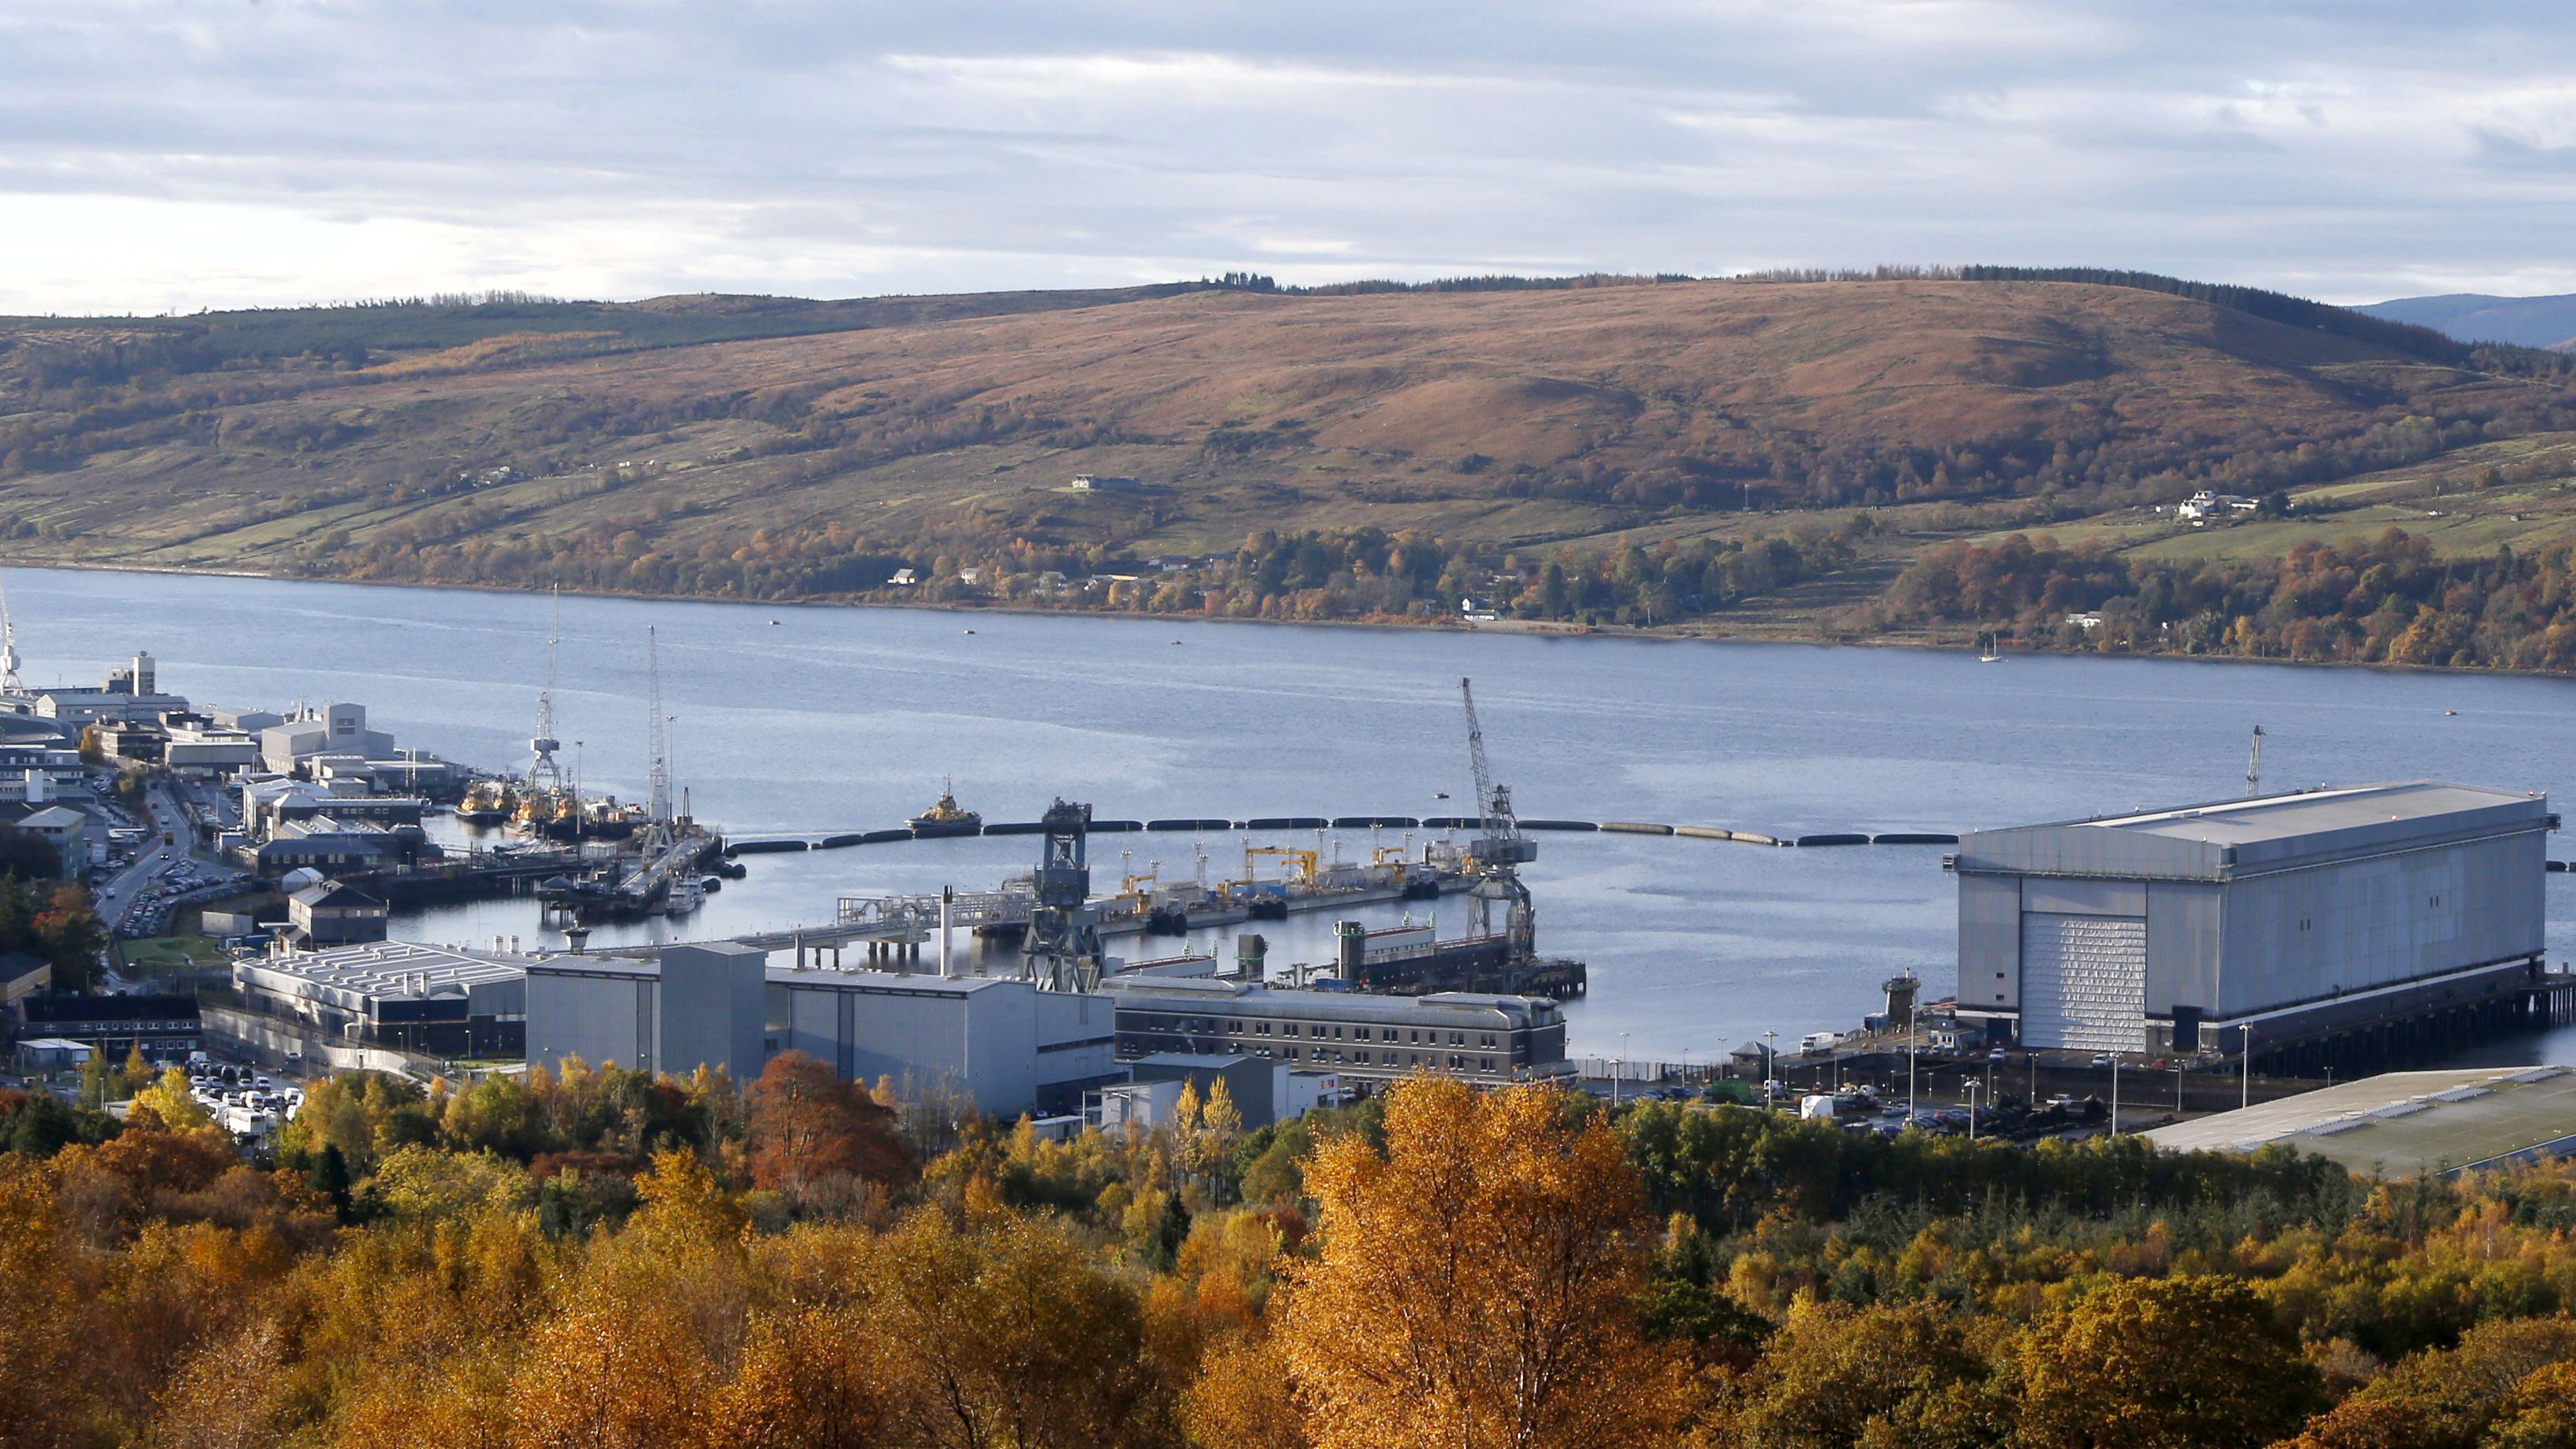 A general view shows the Clyde Naval Base in Scotland October 29, 2012. Britain's Defence Secretary Philip Hammond on Monday said an extra 350 million pounds ($562 million) would be spent developing next generation nuclear submarines, brushing aside Scottish nationalist threats to force the country's submarine base out of Scotland. REUTERS/Danny Lawson/pool (BRITAIN - Tags: POLITICS MILITARY BUSINESS EMPLOYMENT)